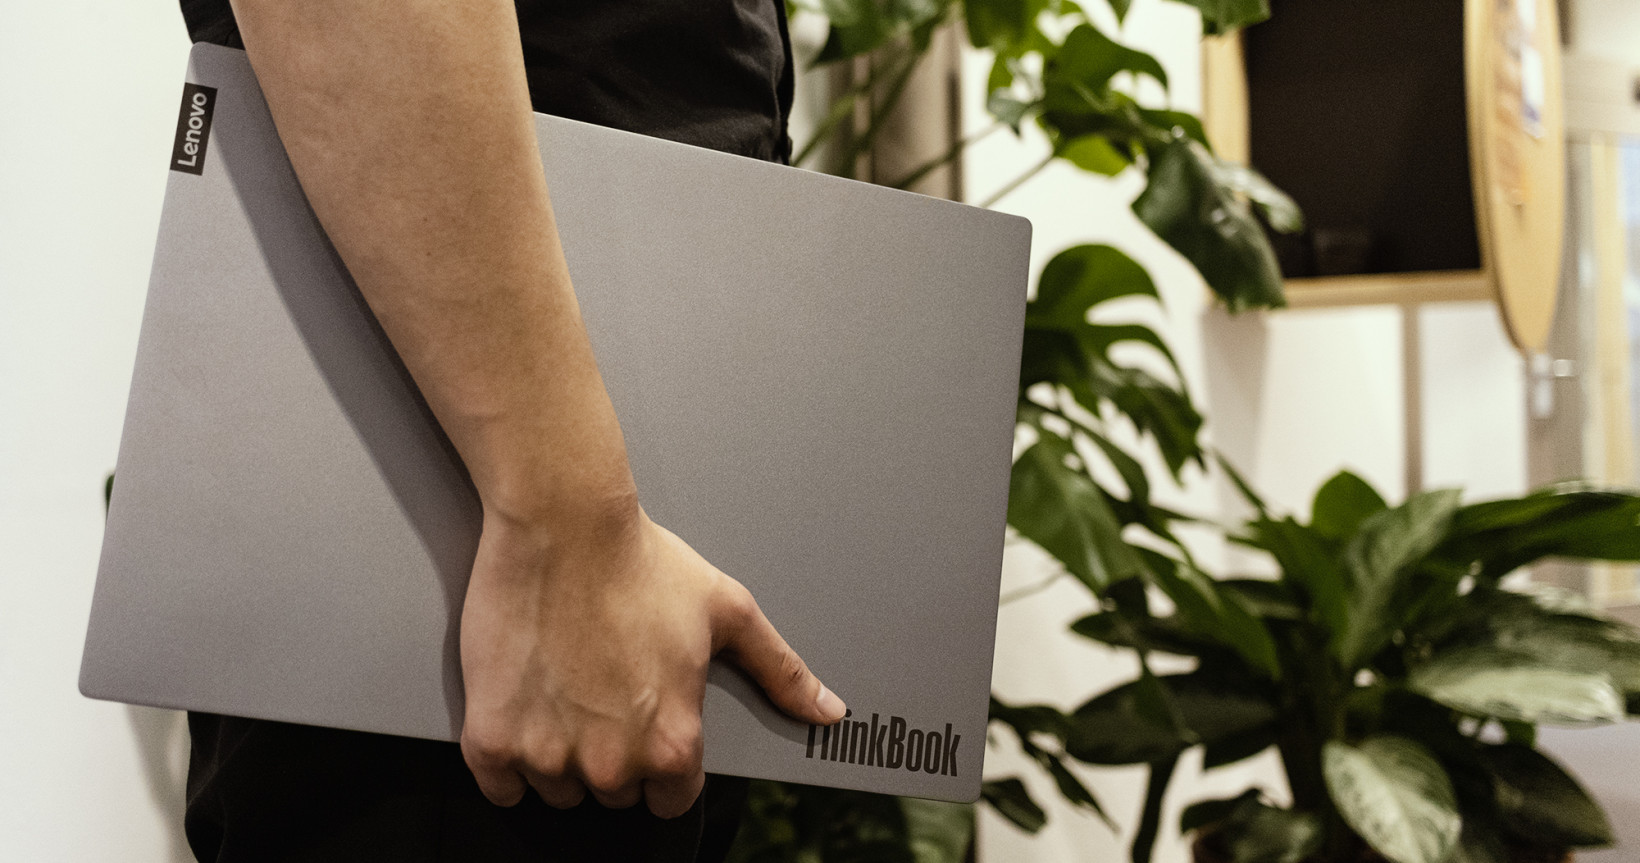 Lenovo's ThinkBook 14 comes in a simple Mineral Grey colorway